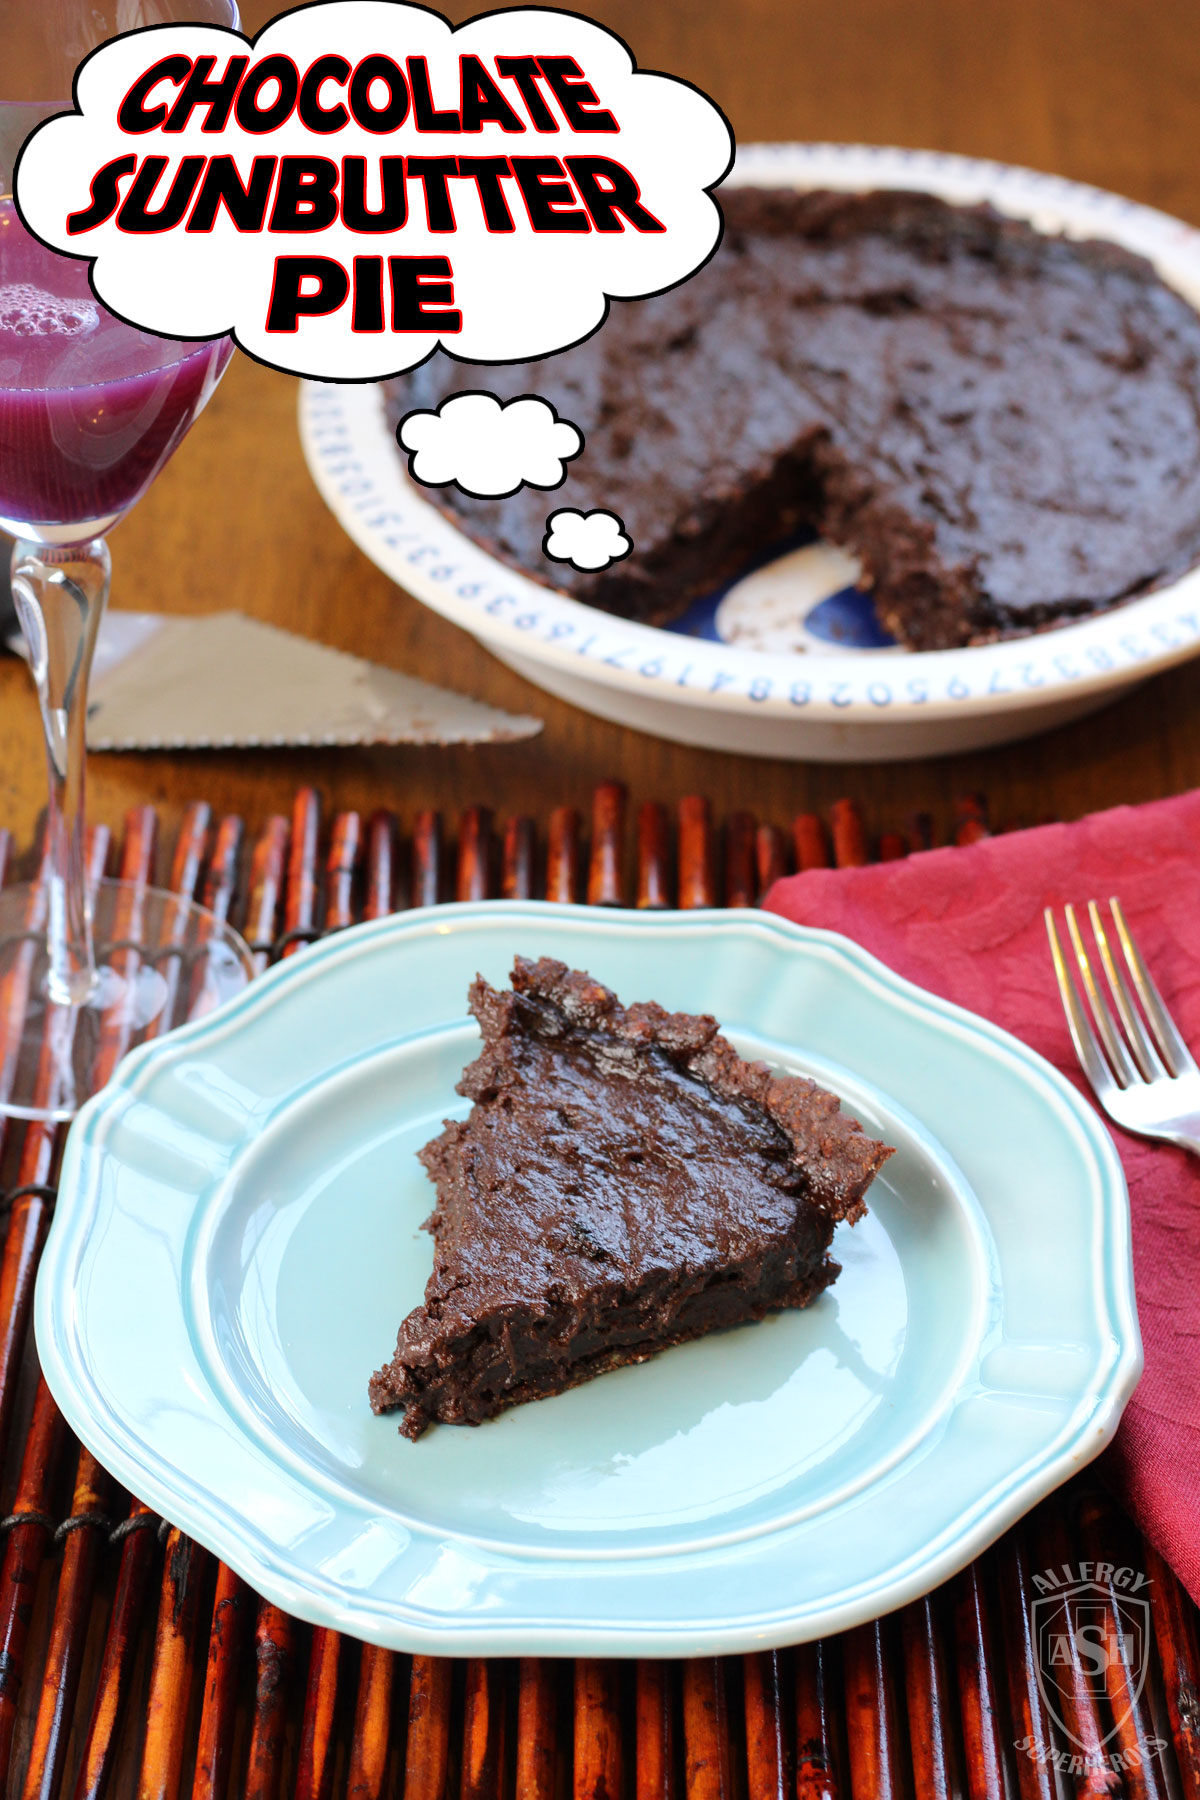 Chocolate Sunbutter Pie (with Enjoy Life Foods Chocolate Sunseed Crunch Crust)